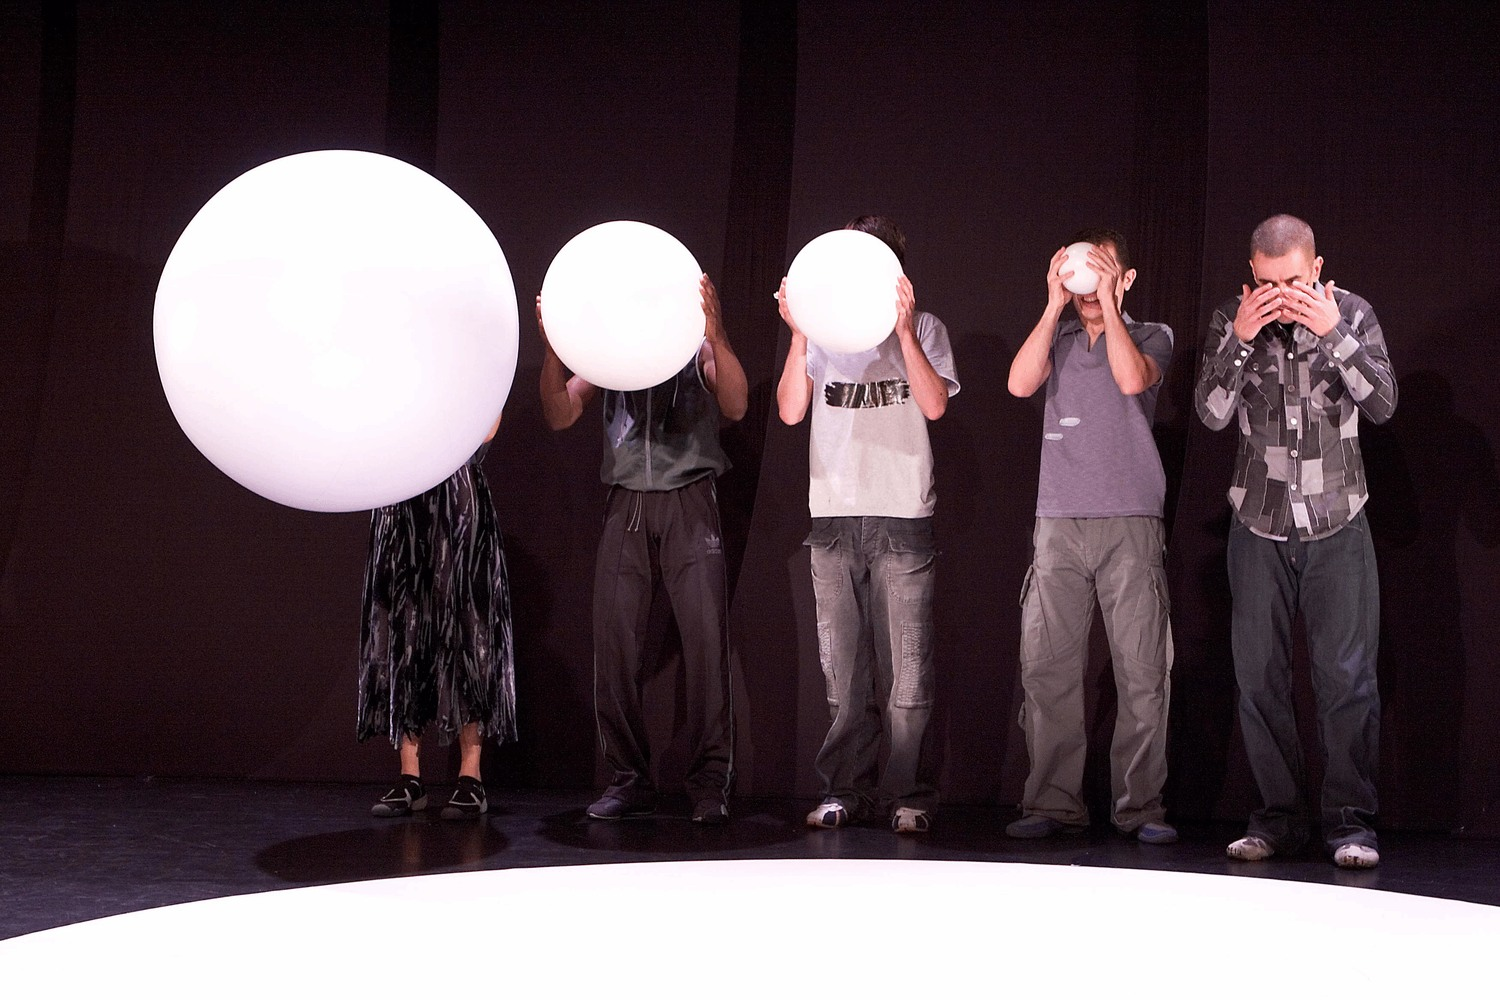 Five friends stand on the edge of a circle. The man on the right holds his hands over his eyes and the remaining four hold white balls which gradually increase in size